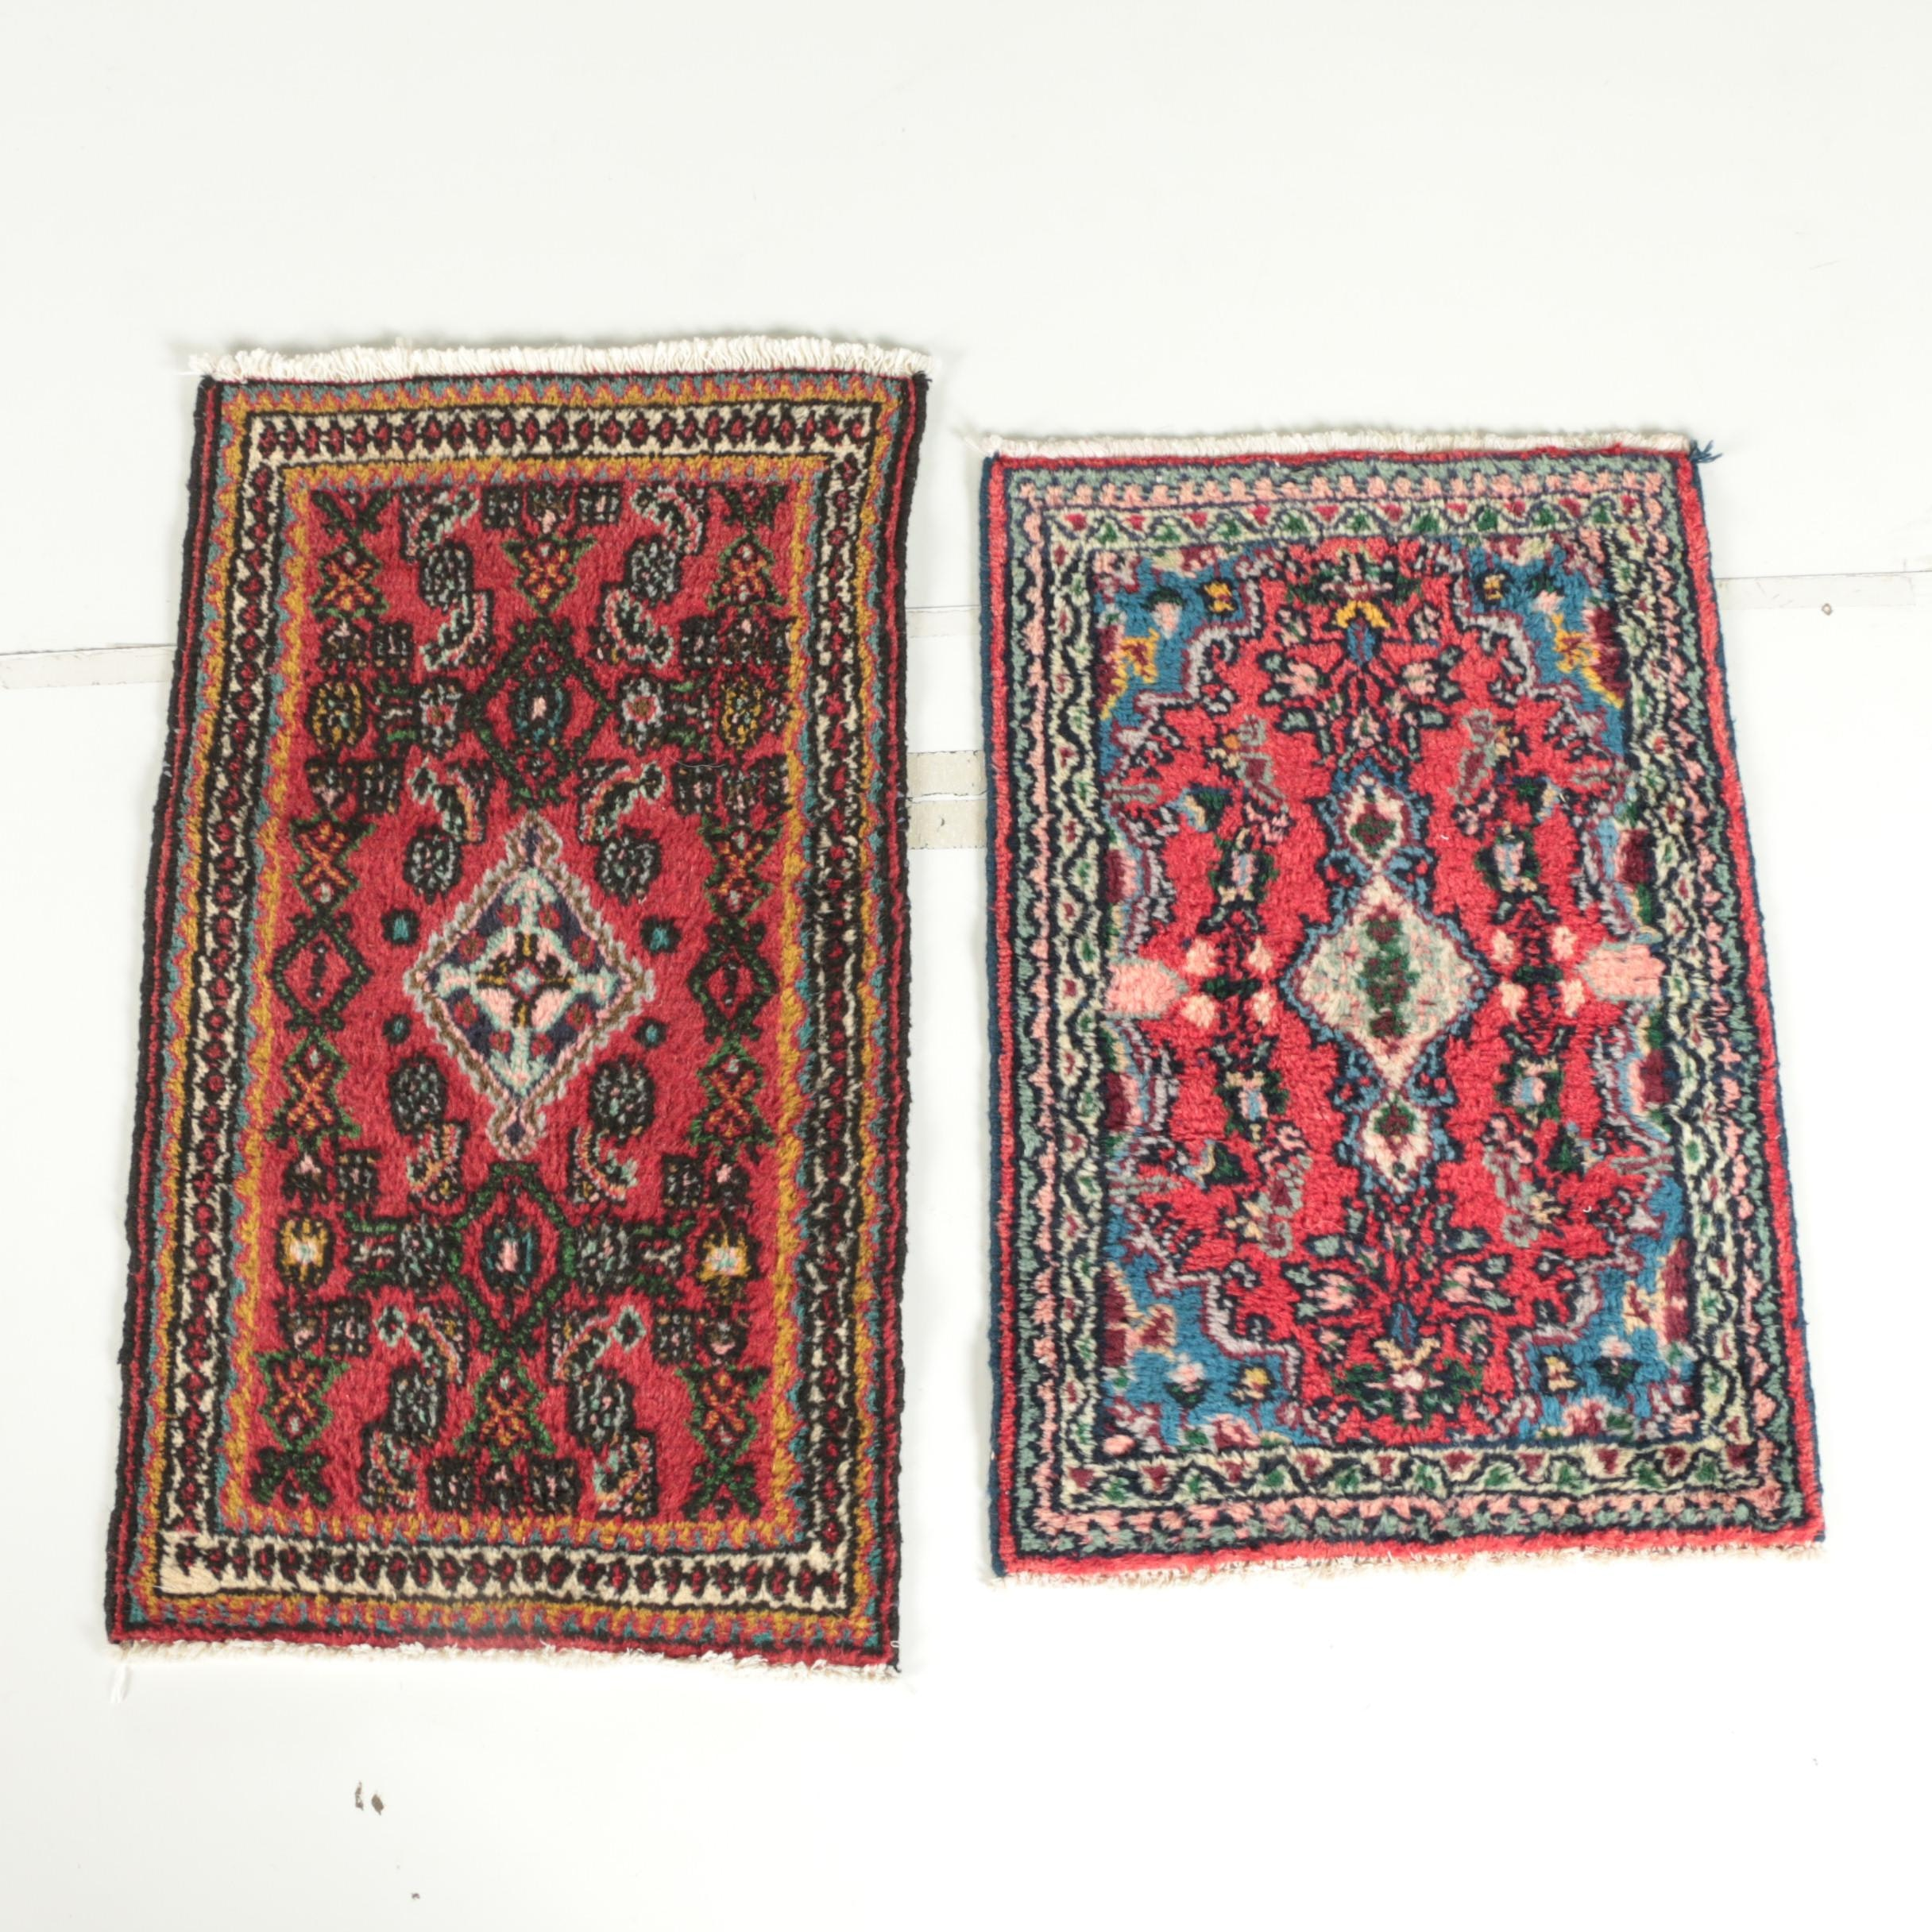 Hand-Knotted Persian Hamadan Wool Accent Rugs